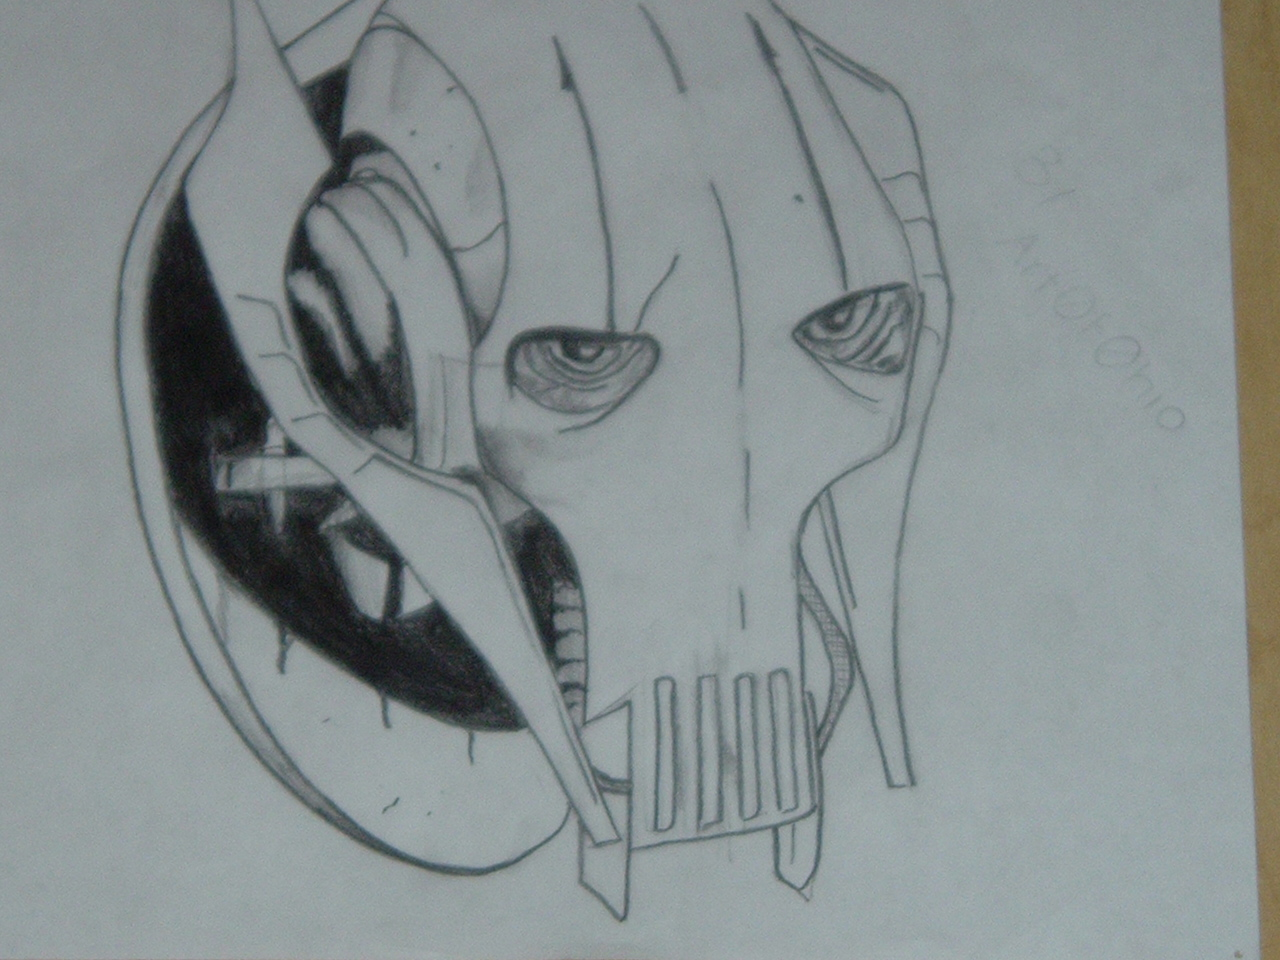 General Grievous by art0f0hio